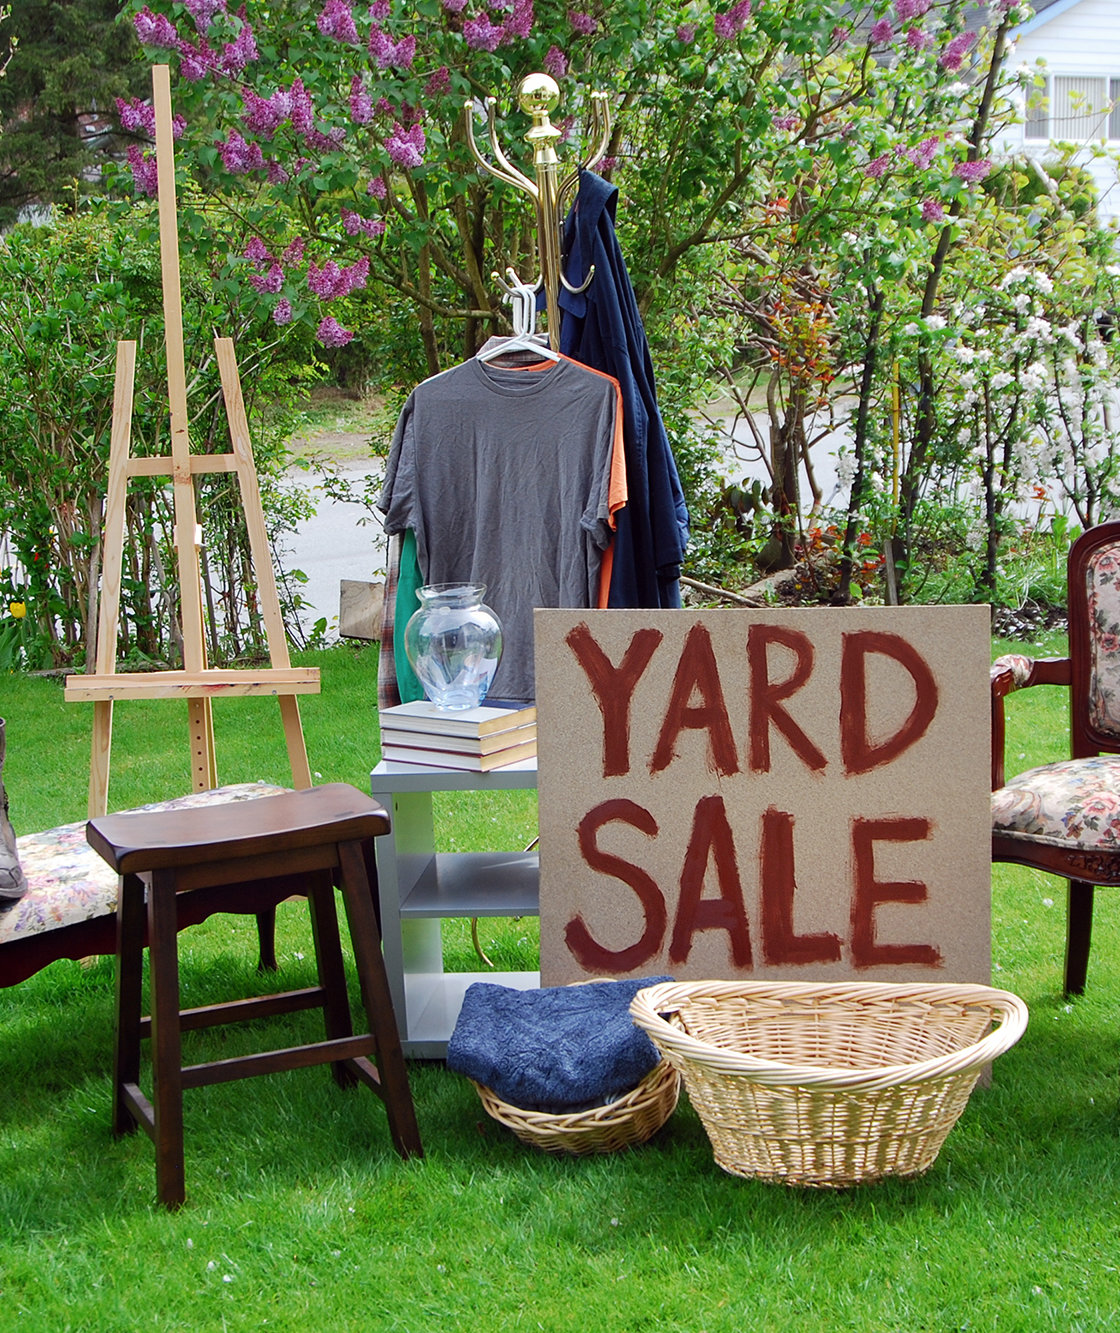 How to Score The Best Used Stuff at Yard Sales, EstateSales, and Garage Sales